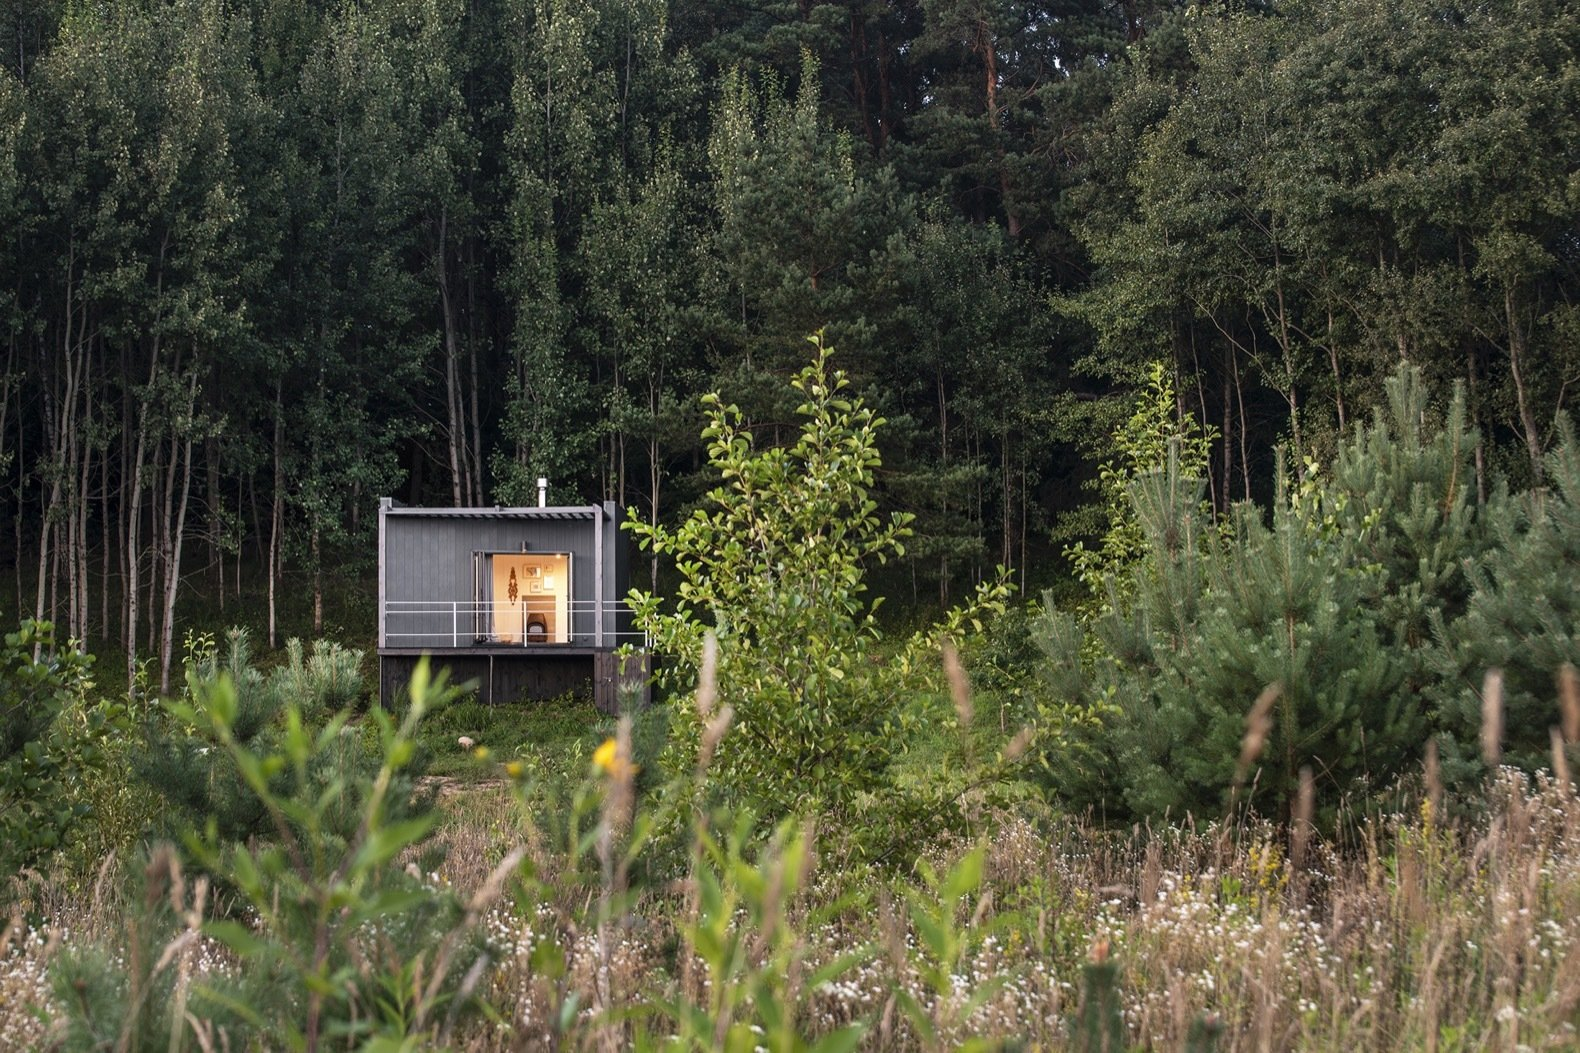 Mingle With Mother Nature in This Tiny Prefab Getaway